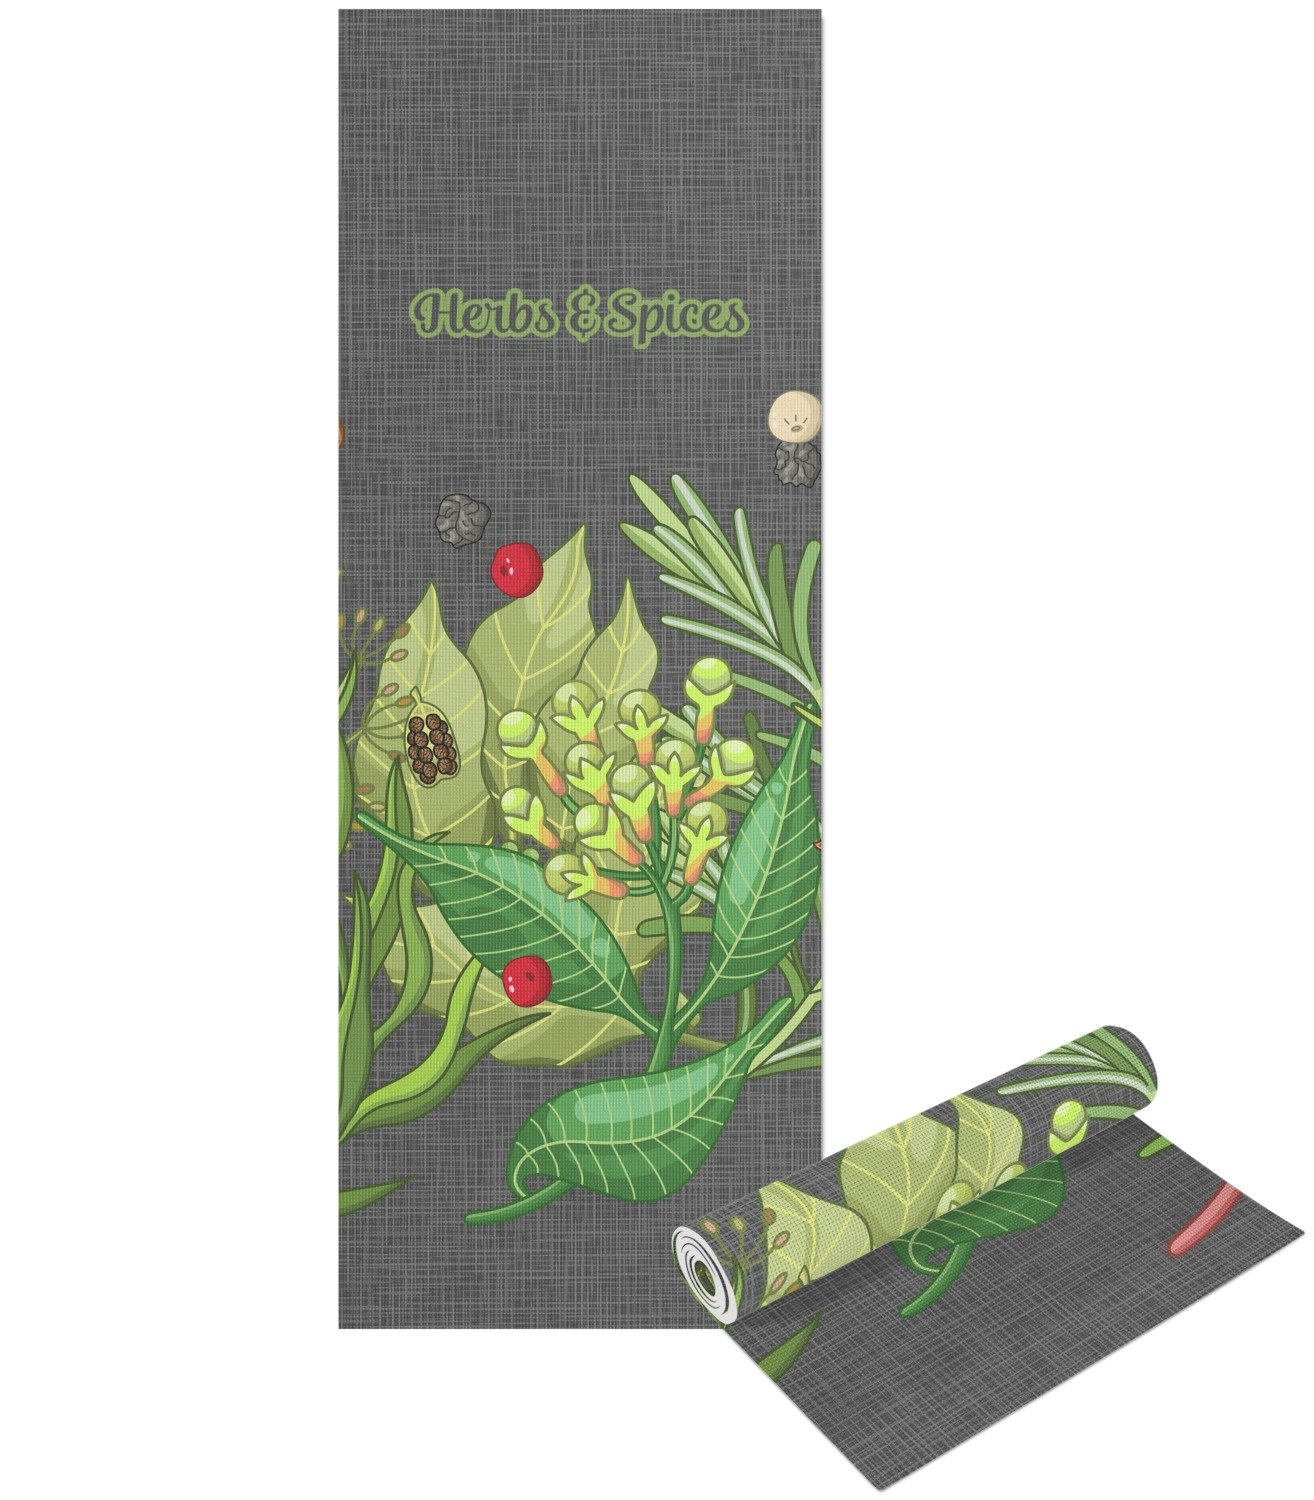 Amazon.com : RNK Shops Herbs & Spices Yoga Mat - Printed ...